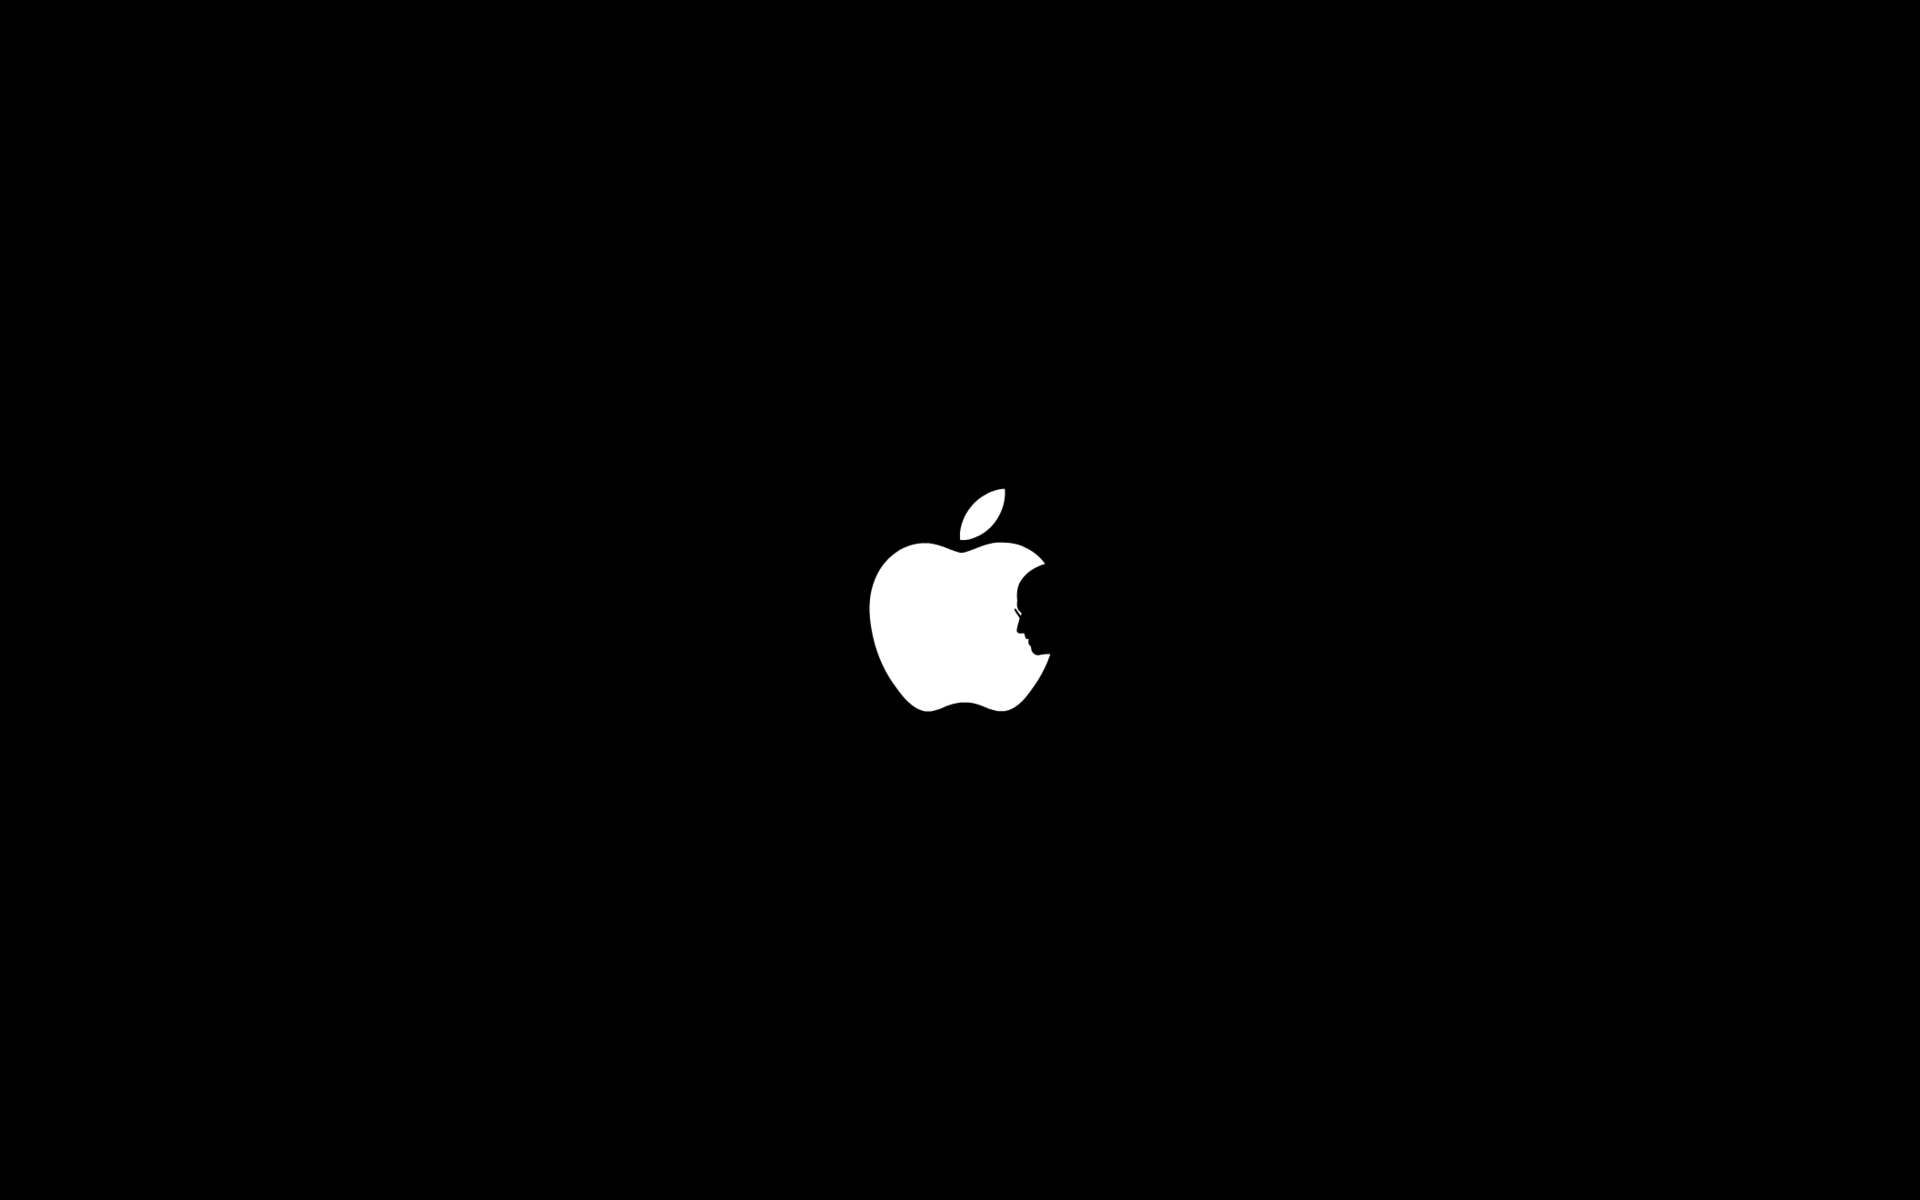 Wallpapers of Apple Logo HD, 0.01 Mb, Stephen Artman